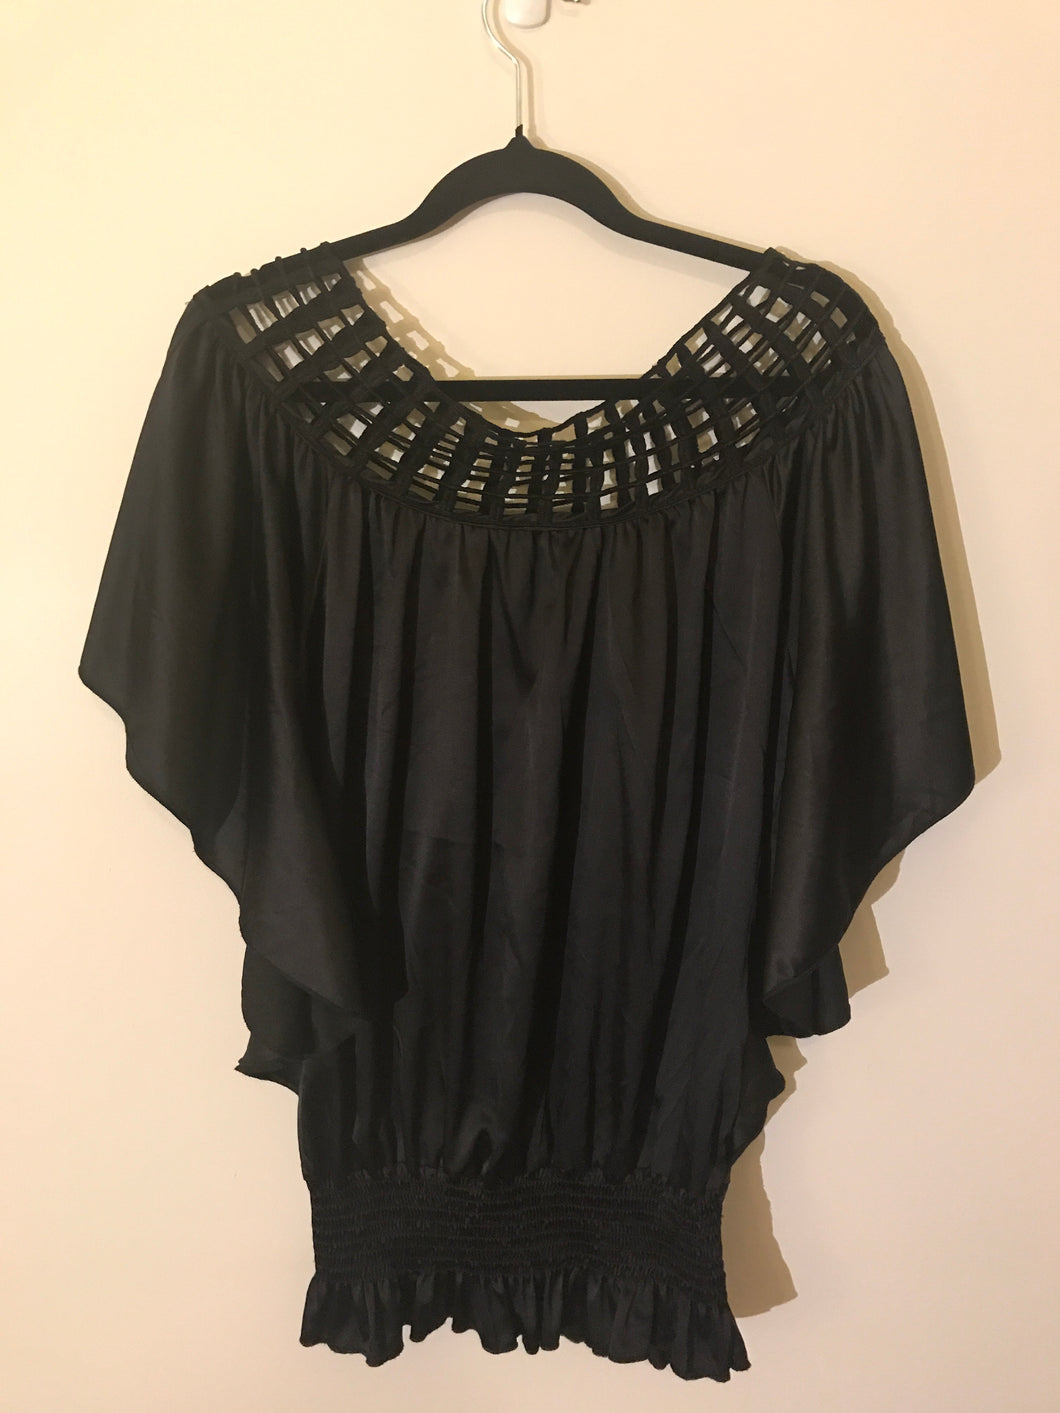 Windsor mesh neck black top bat-wing Size XS (estimate 10)